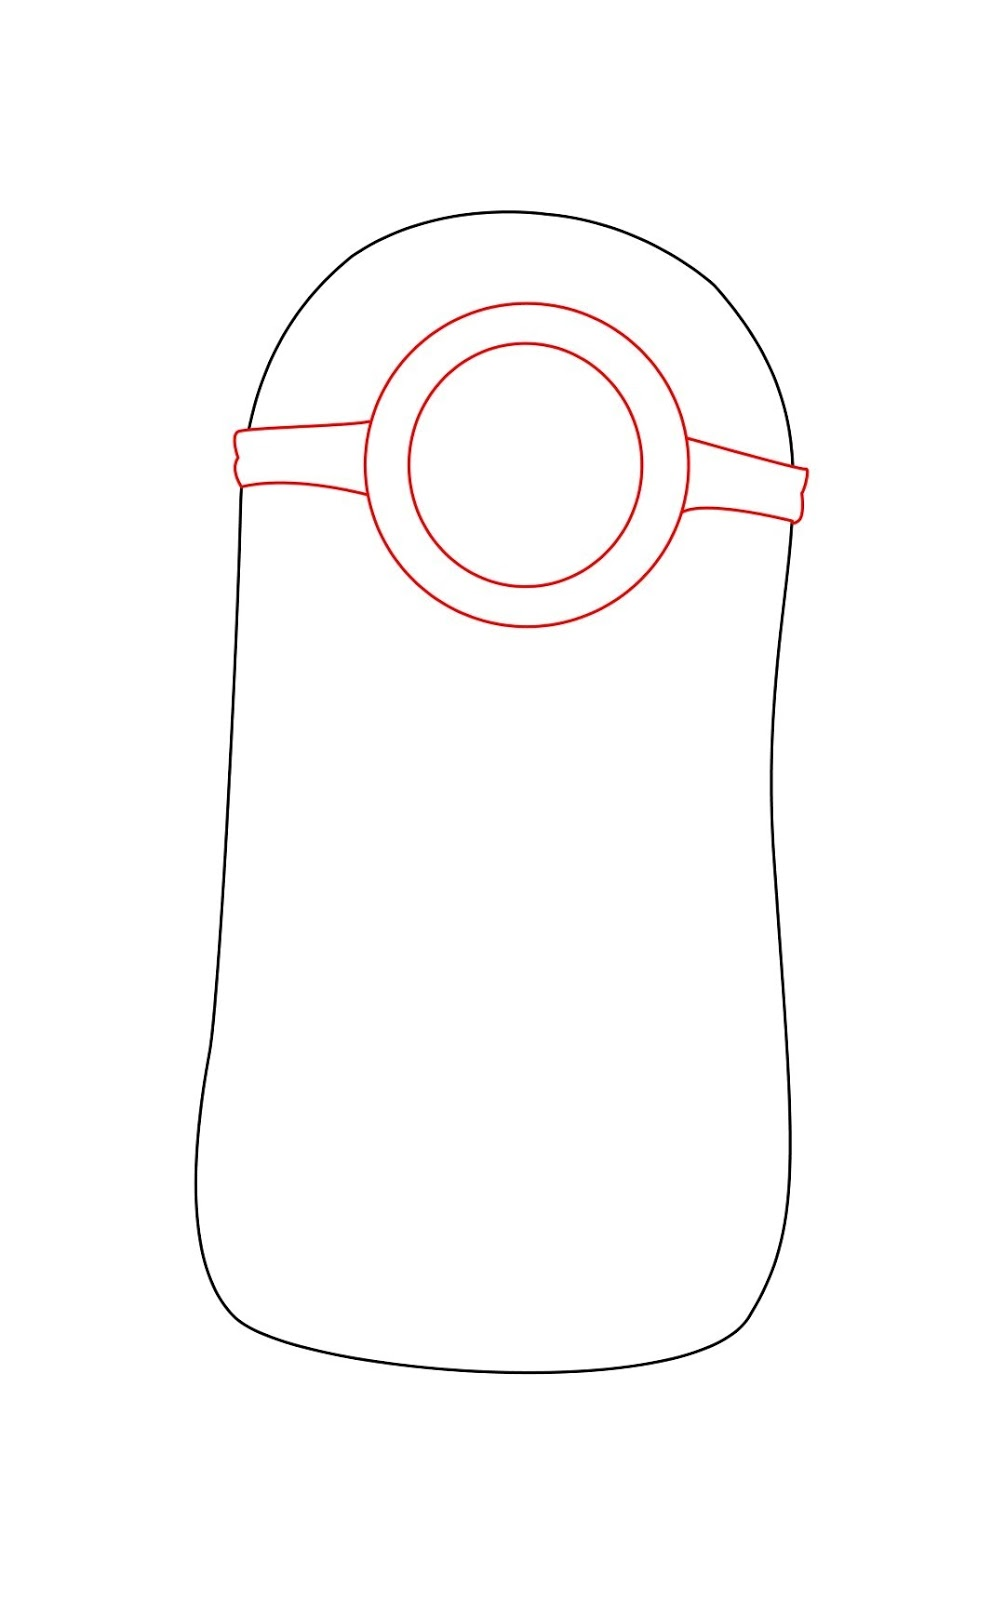 How To Draw Despicable Me Minon Step 2 Despicable Me Minions Drawing Step By Step